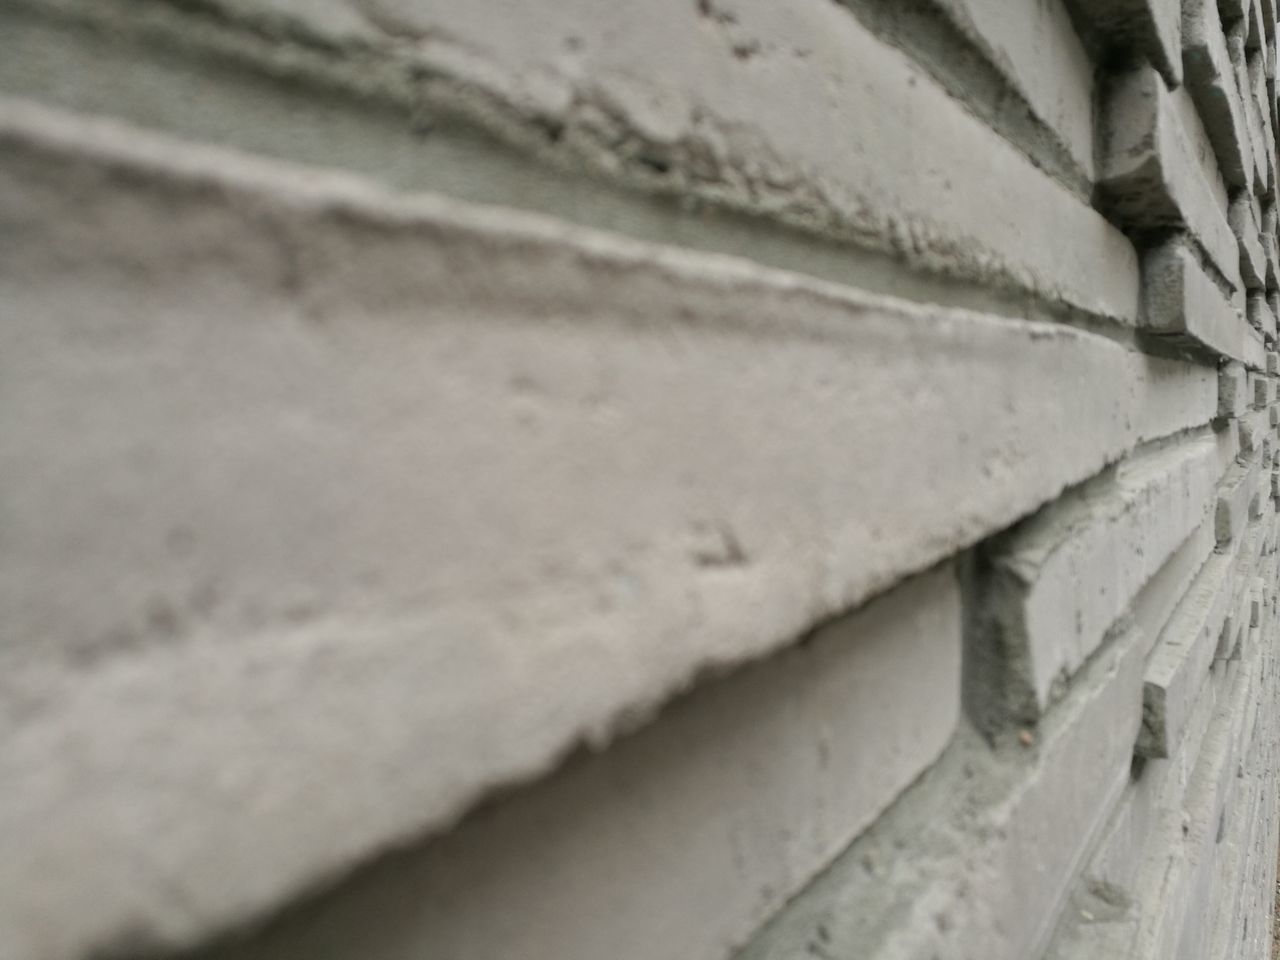 no people, close-up, day, outdoors, architecture